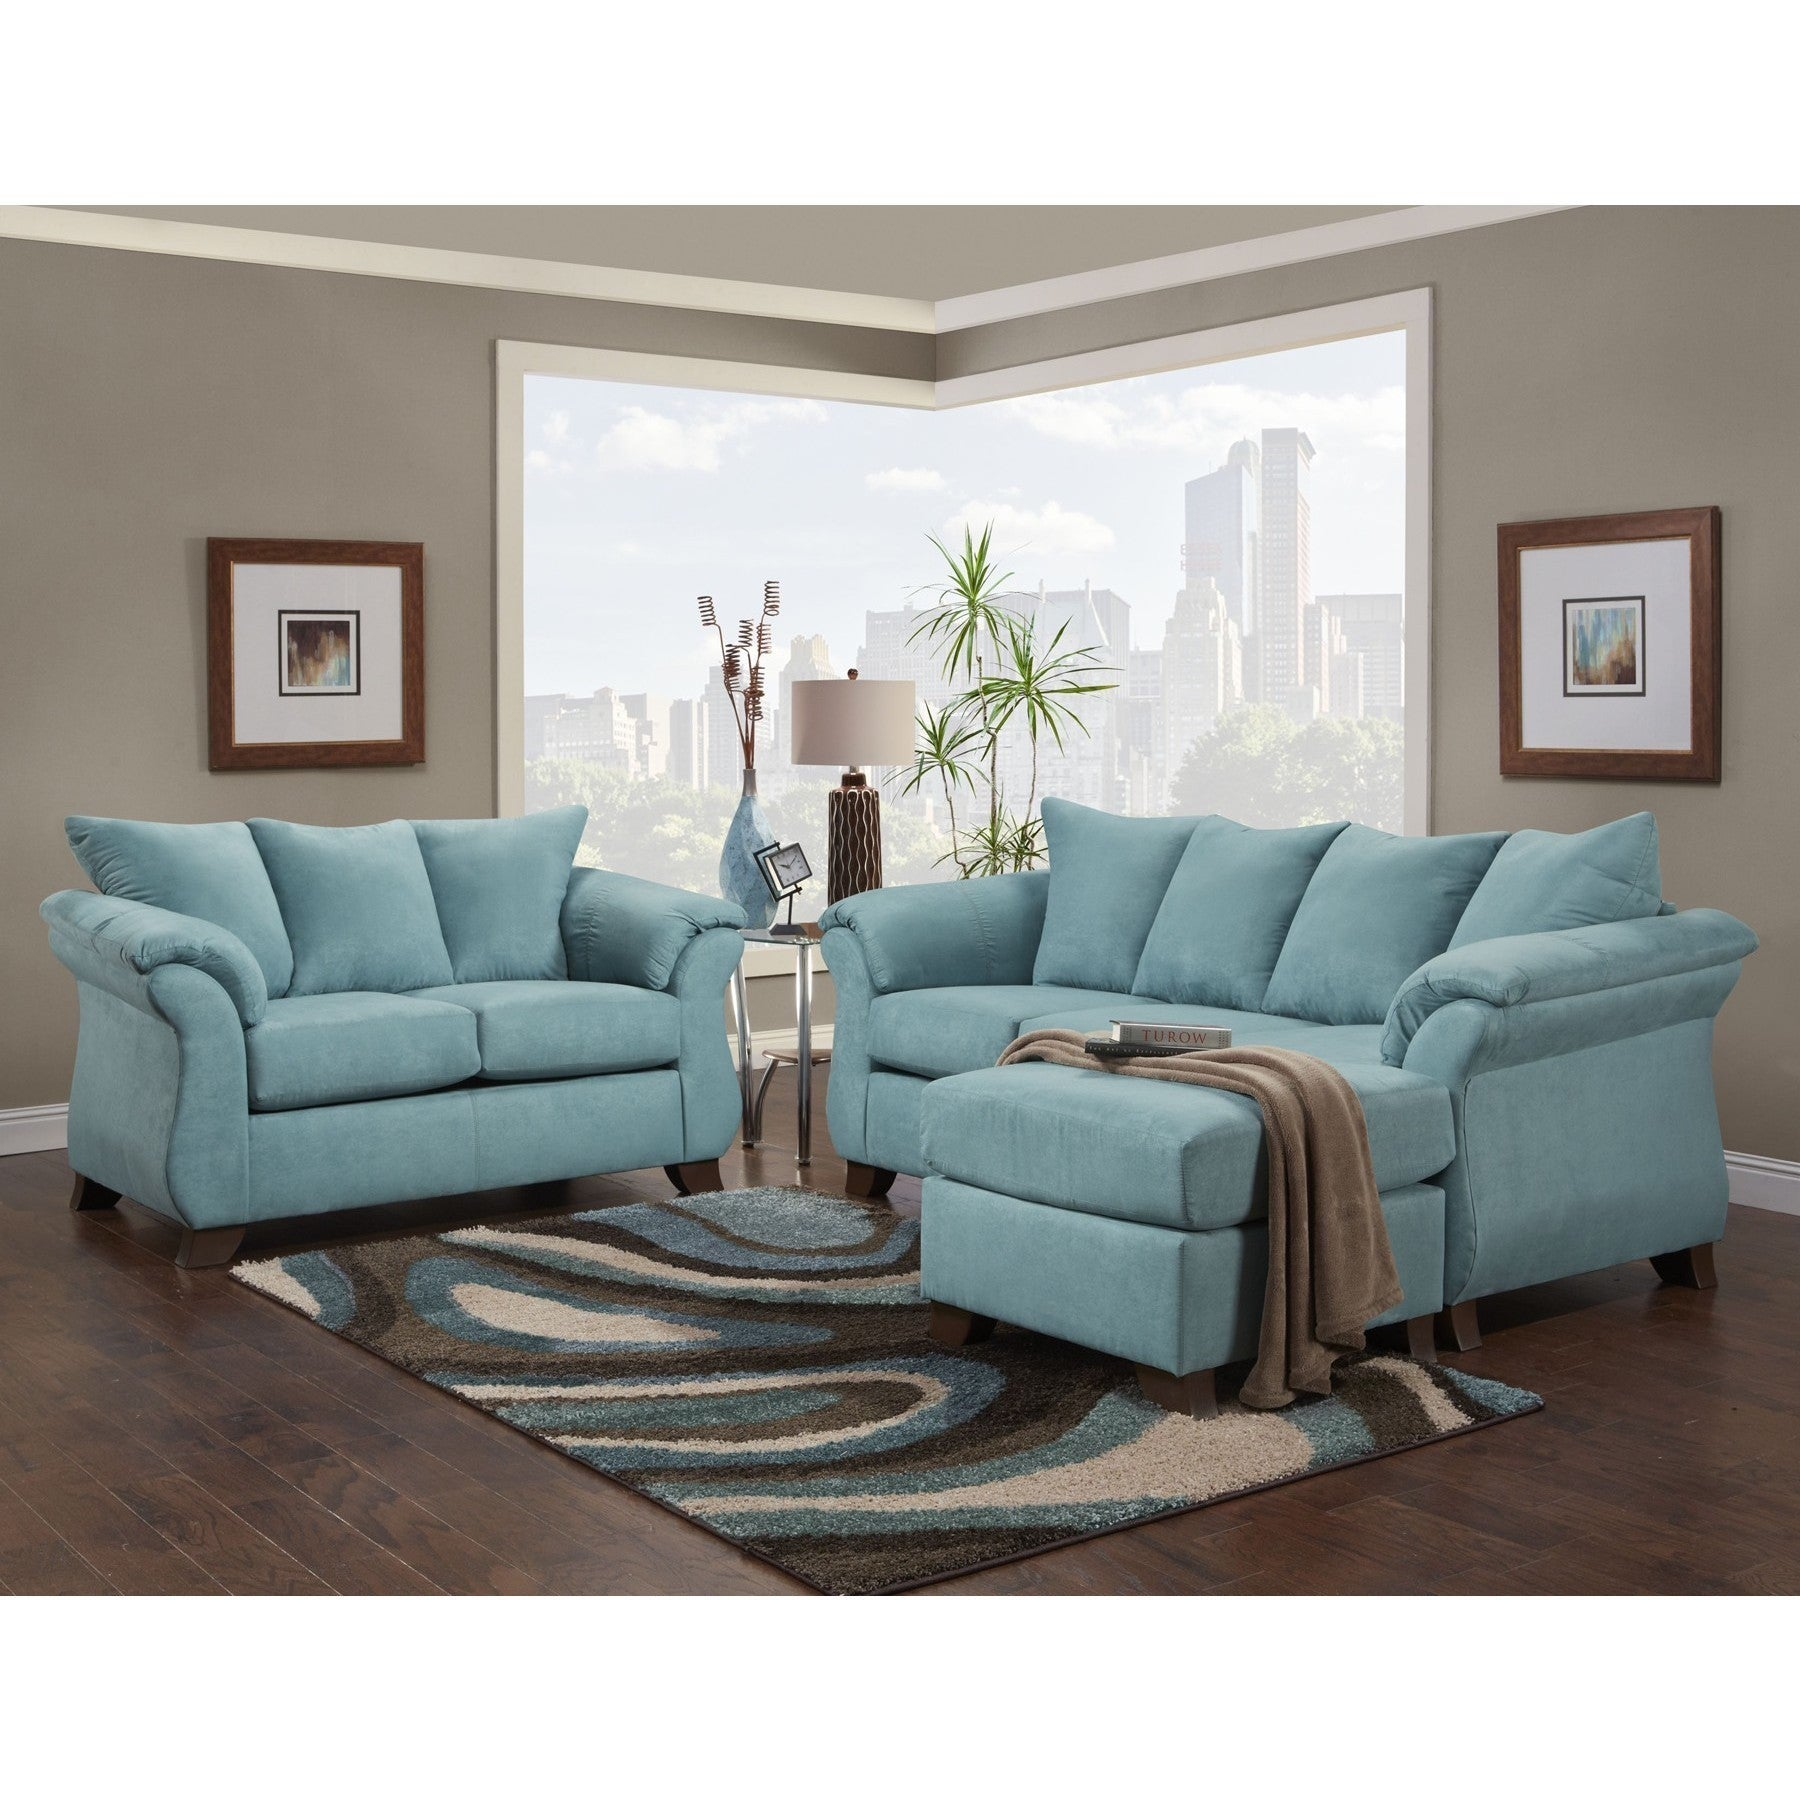 Sofa Trendz Cailyn Sofa/ Chaise, Blue (Polyester Blend)